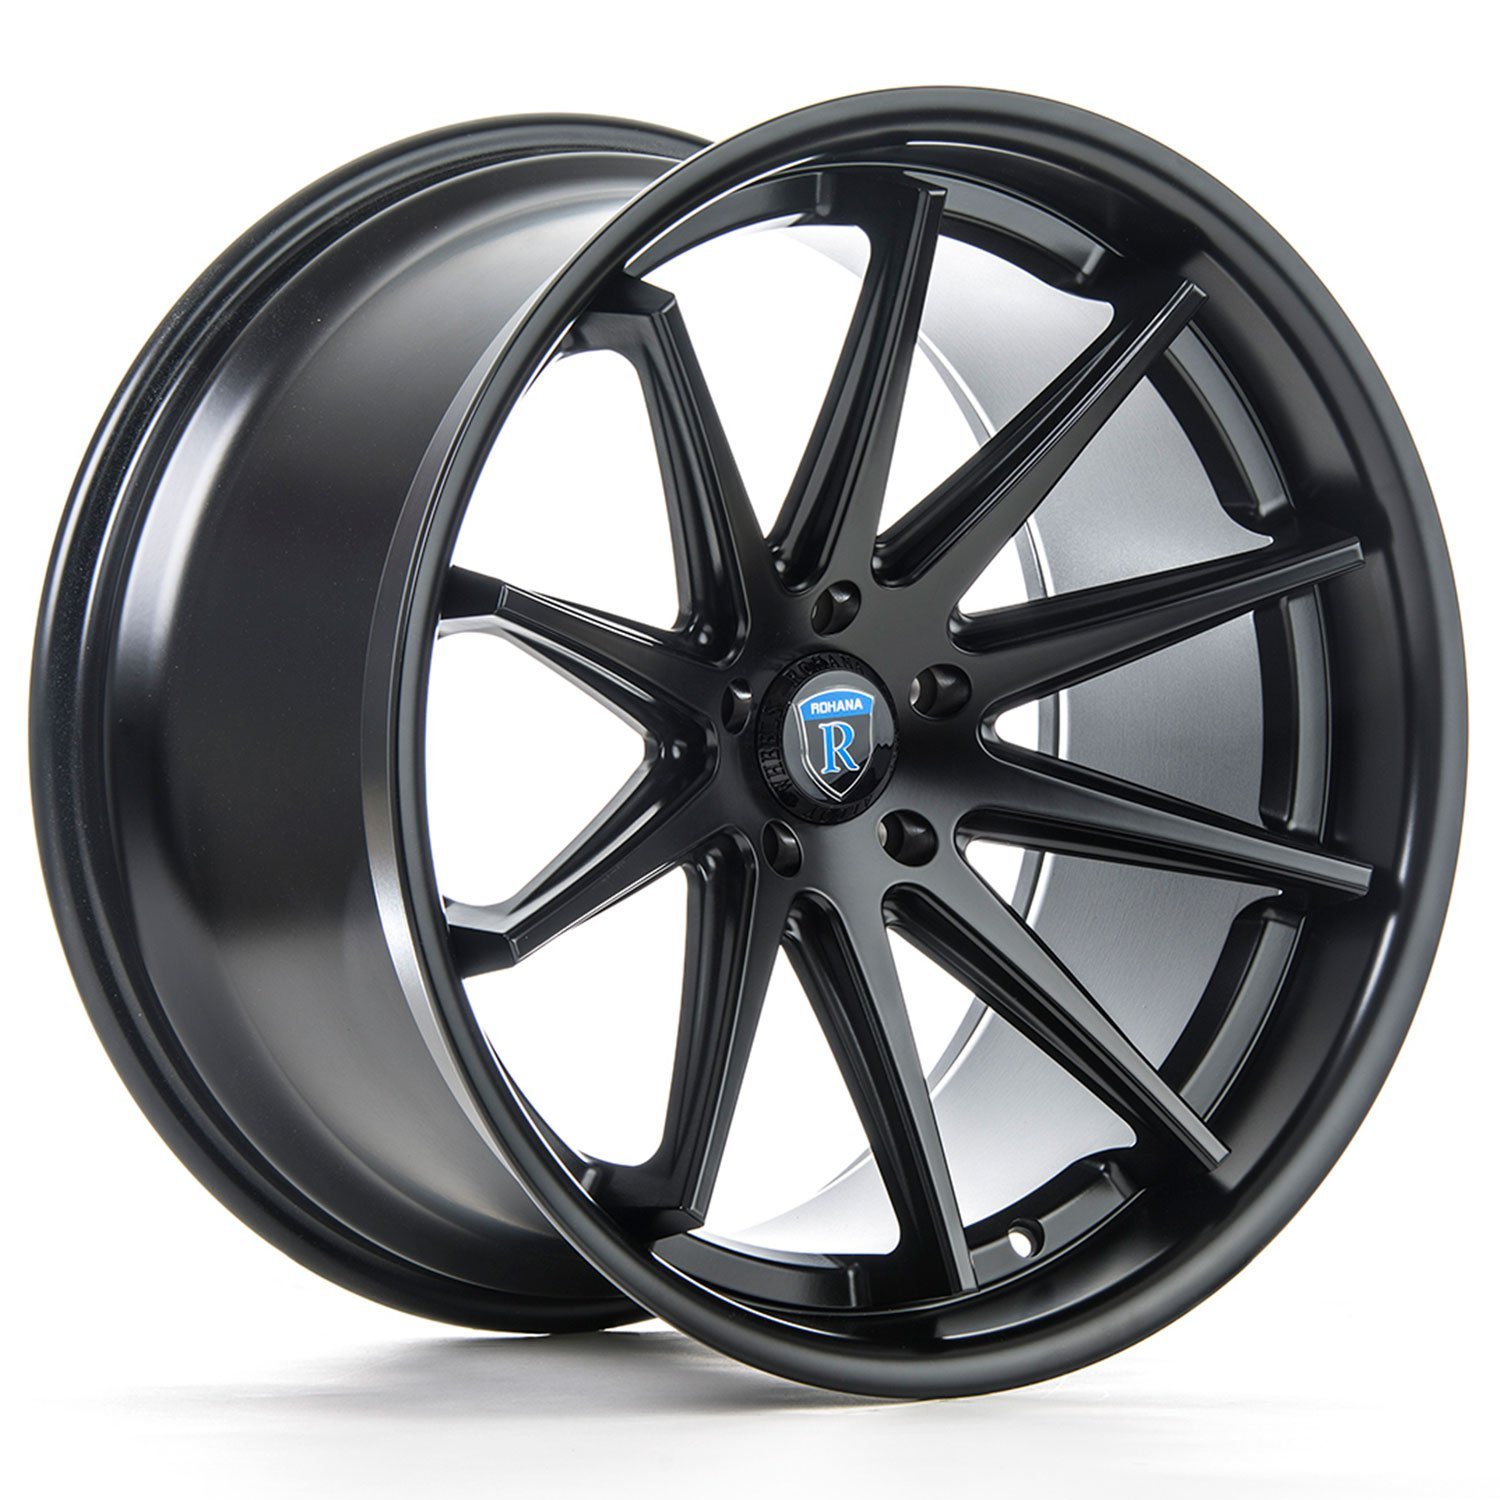 Rohana RC10 19 Matte Black Wheel / Rim 5x120 with a 33mm Offset and a 72.56 Hub Bore. Partnumber RC1019855120MB33